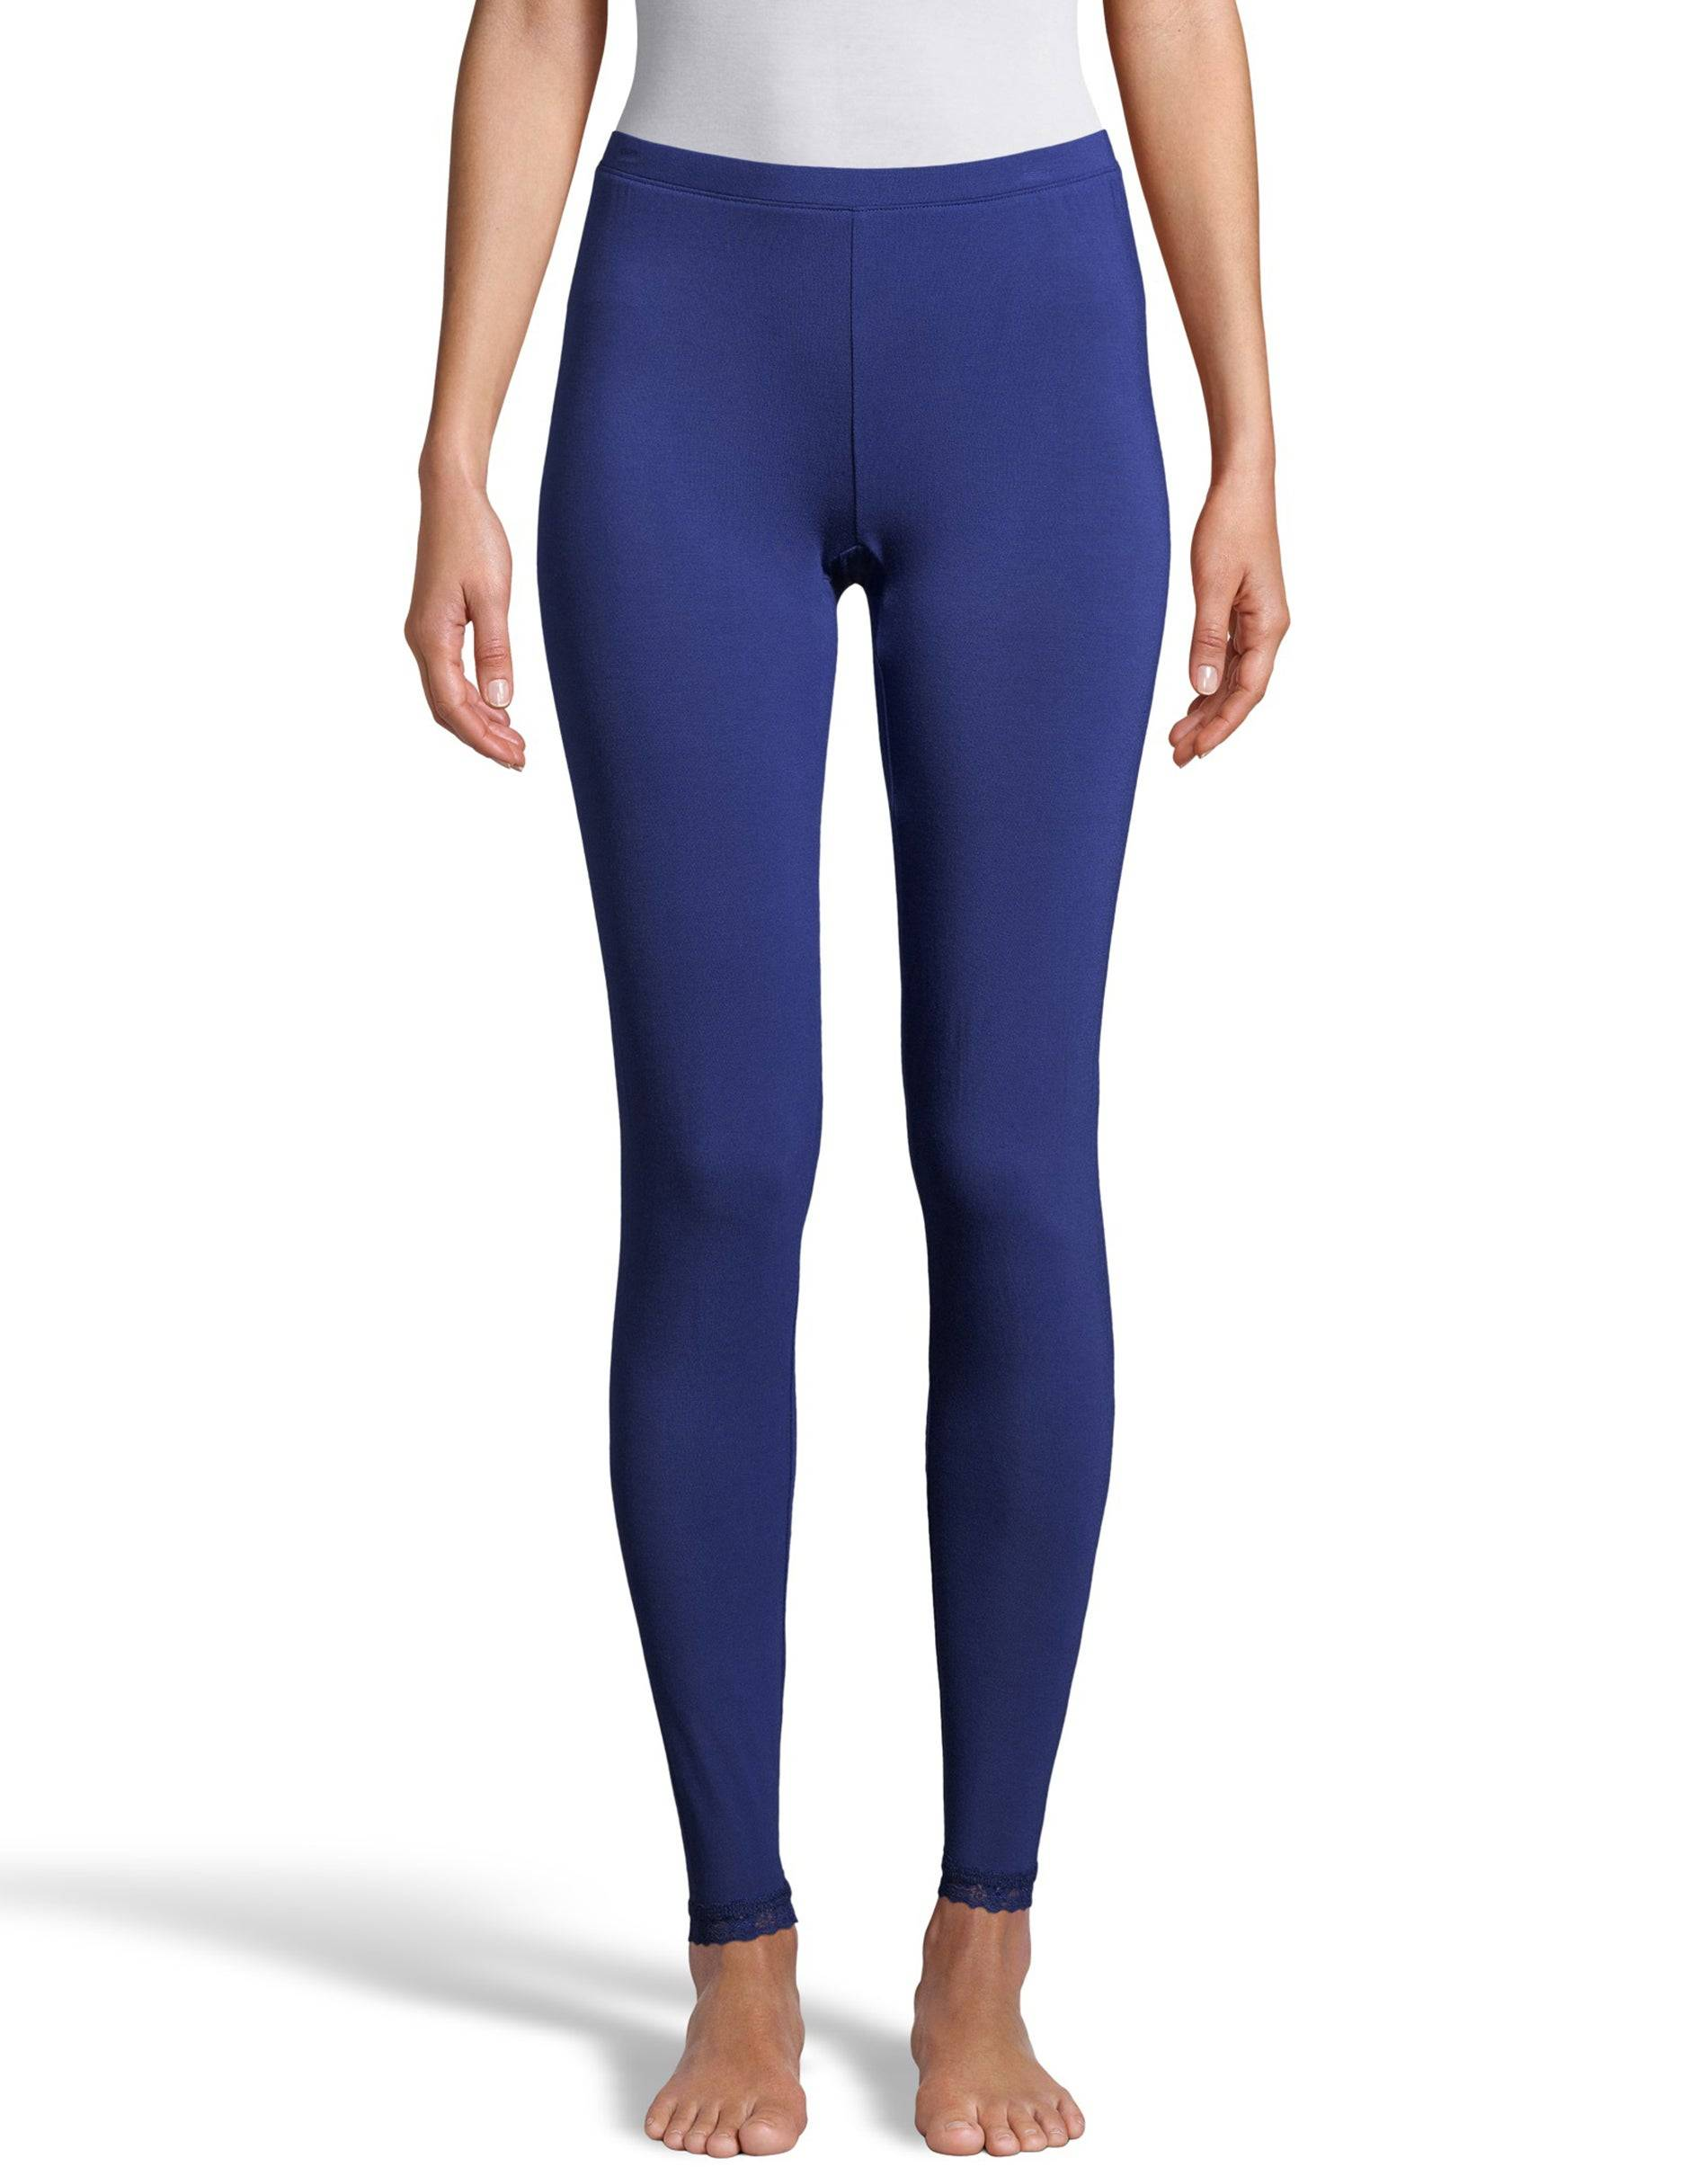 Hanes Women's Comfort Collection Thermal Pant Blue M